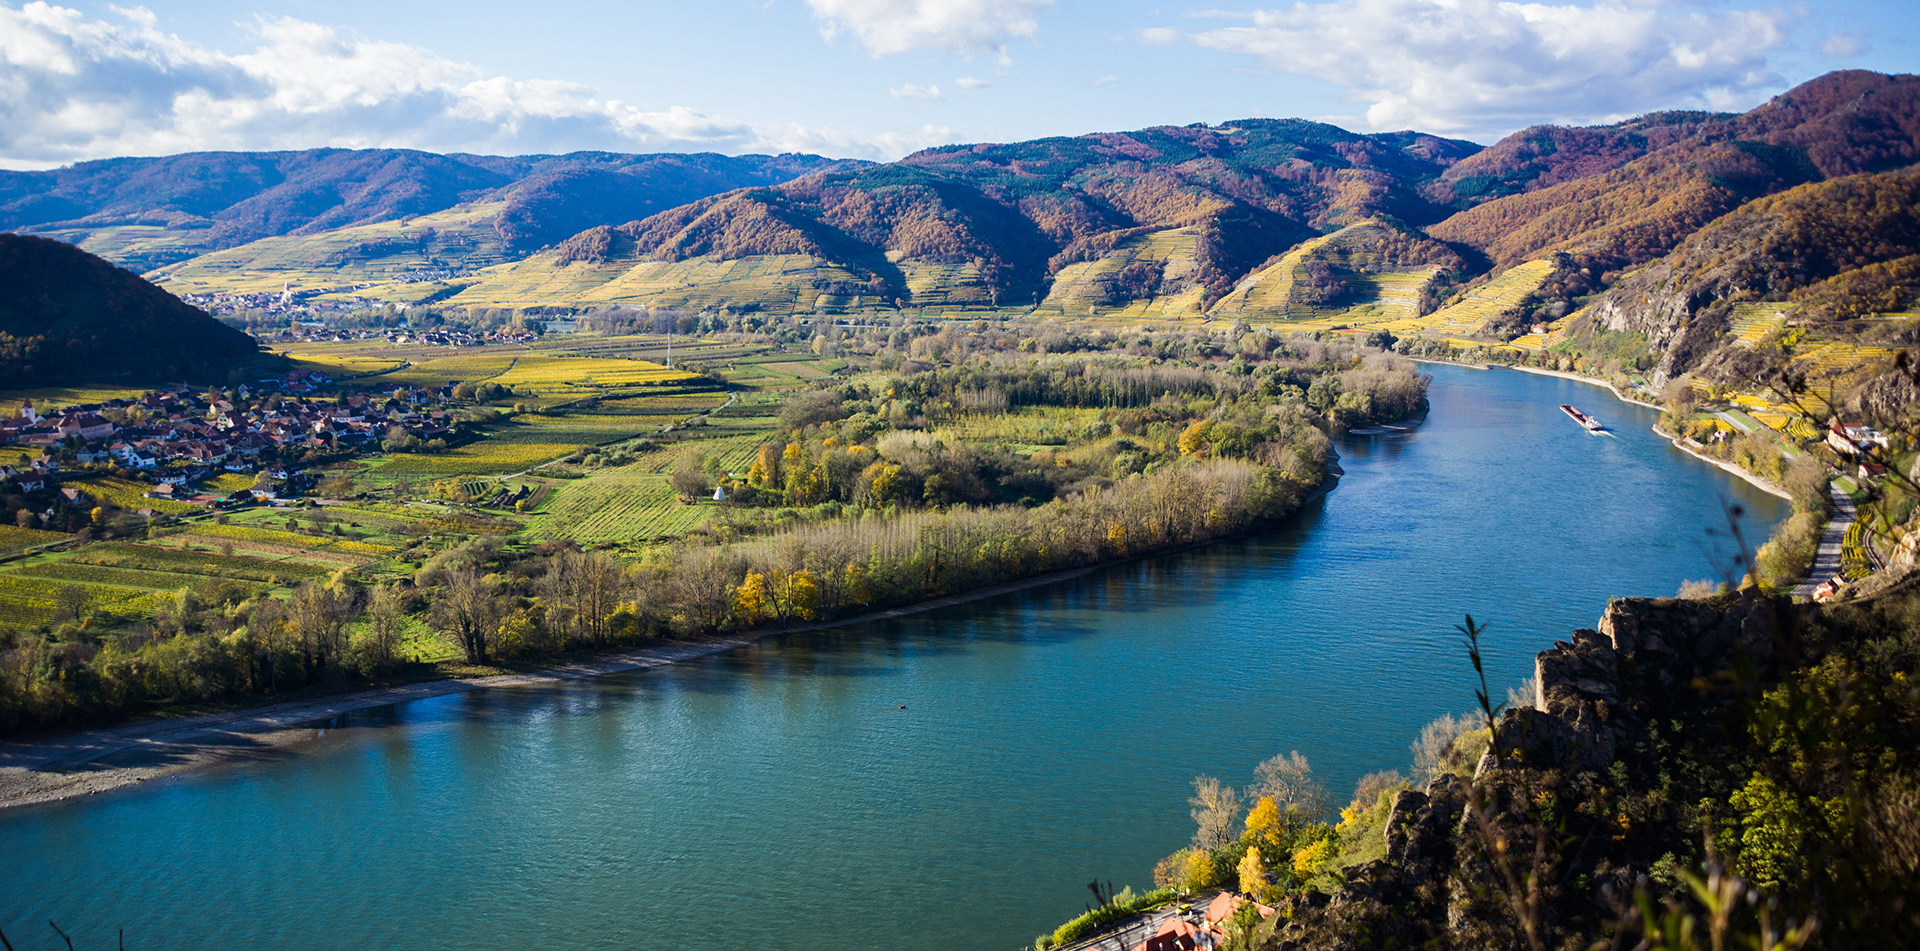 Europe Austria aerial view of Wachau Valley on the Danube River - luxury vacation destinations